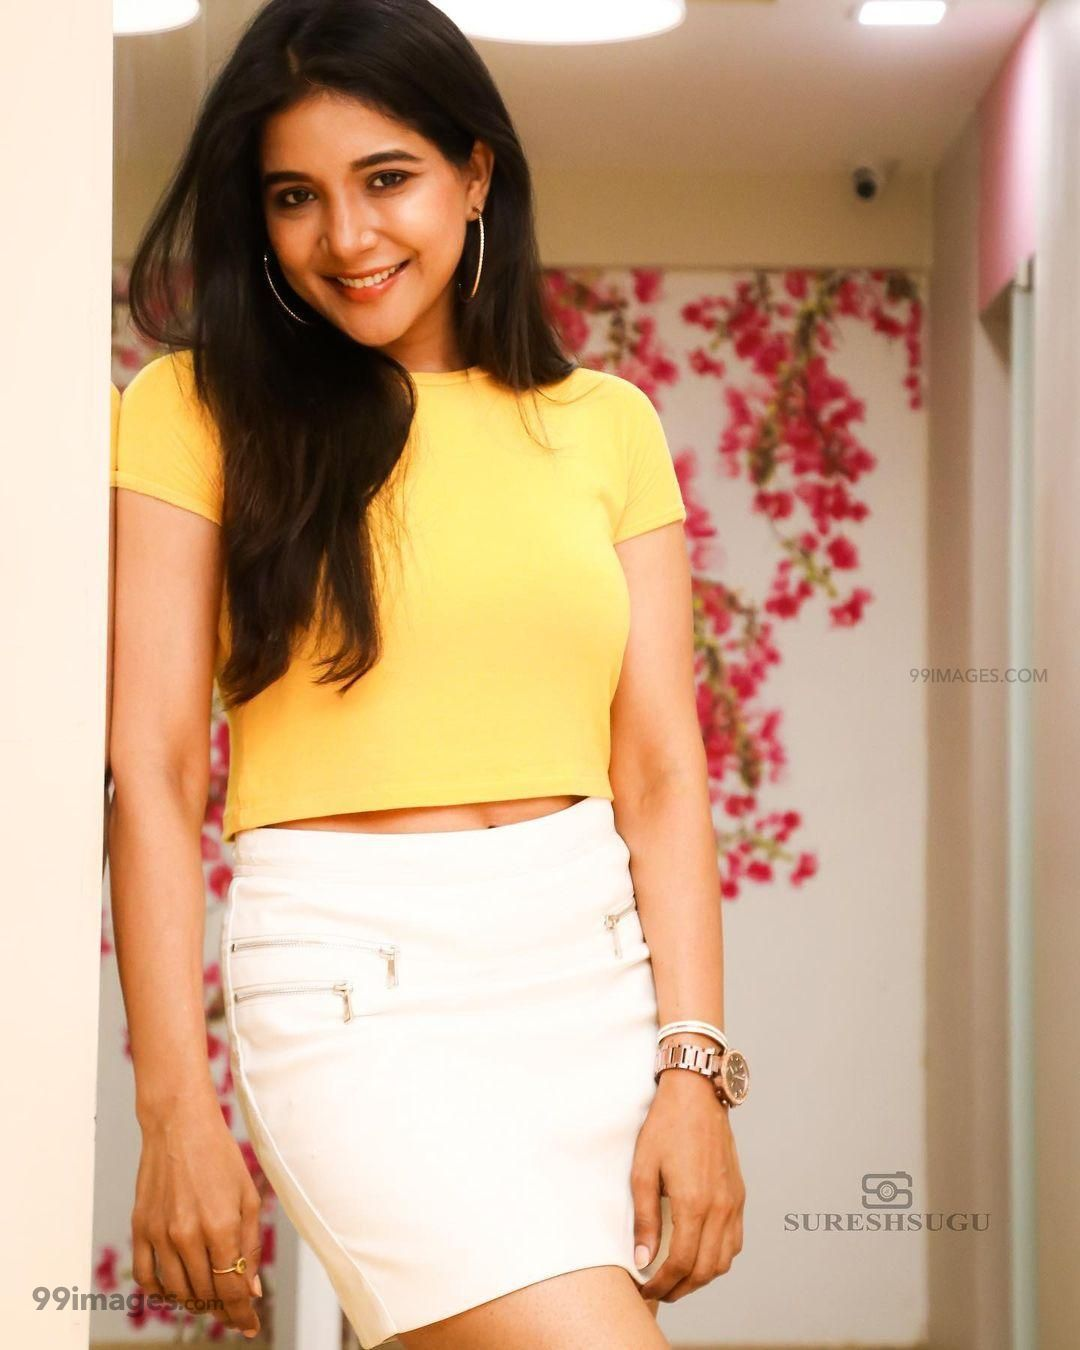 Sakshi Agarwal Hot HD Photos & Wallpapers for mobile (1080p) (623327) - Sakshi Agarwal